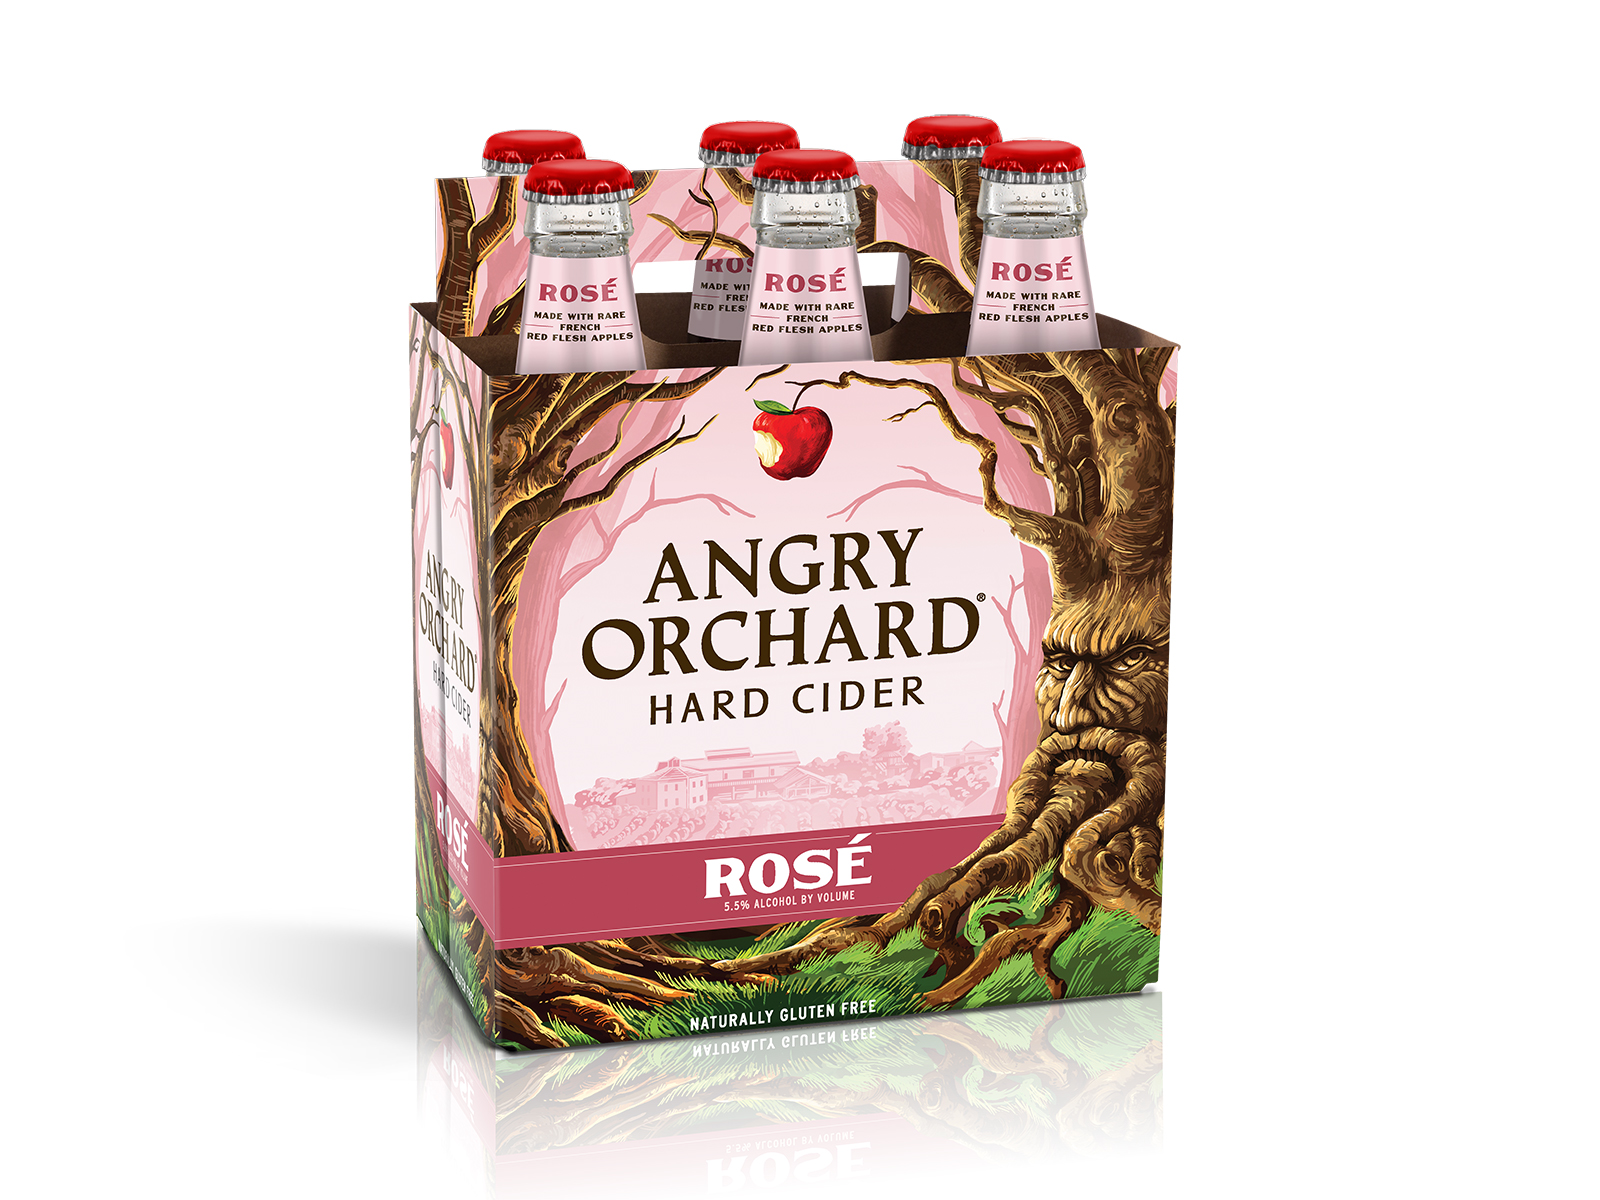 angry orchard new rose hard cider